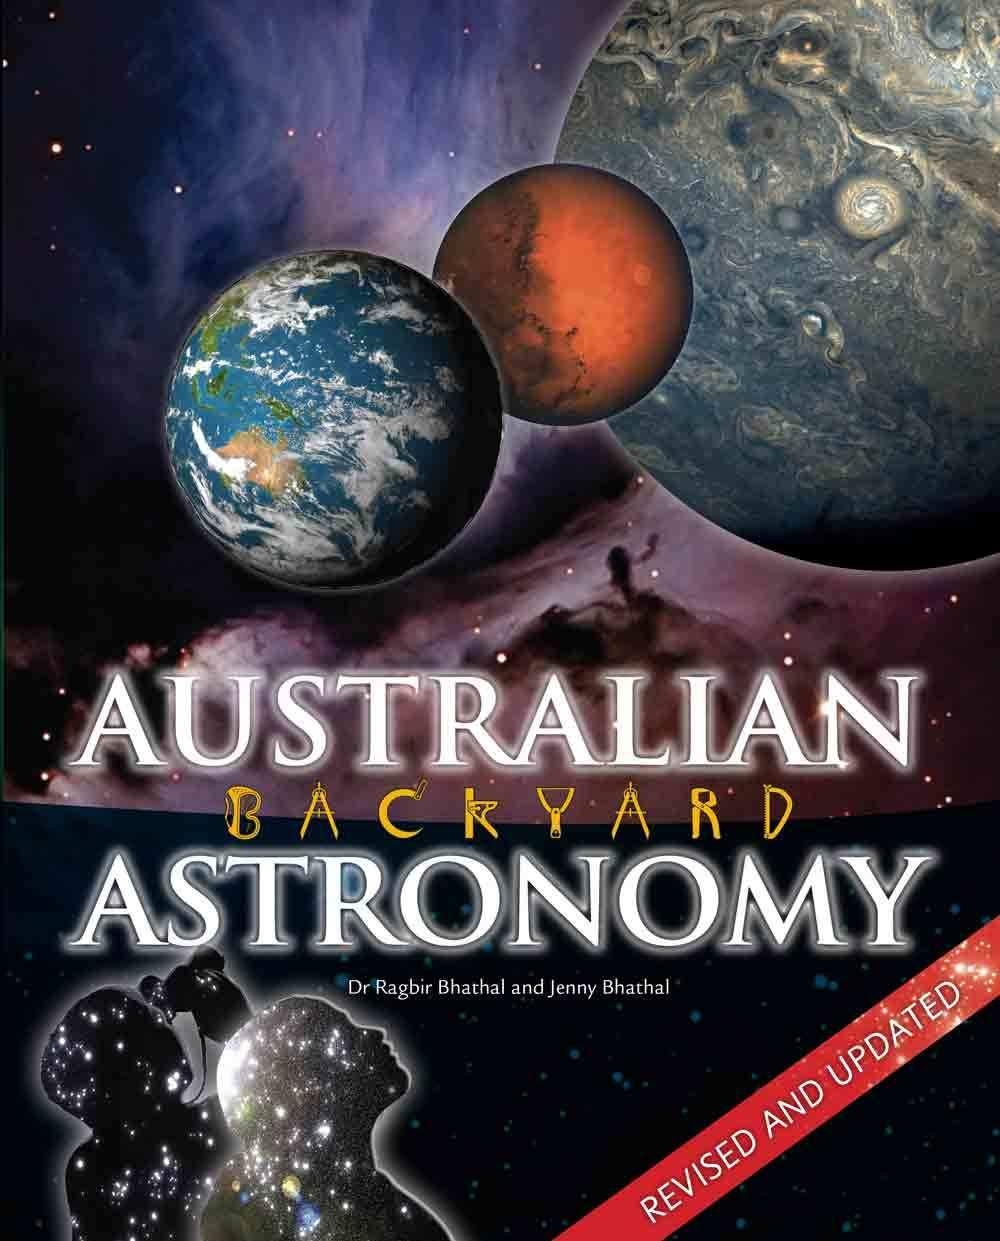 Australian Backyard Astronomy (revised edition)